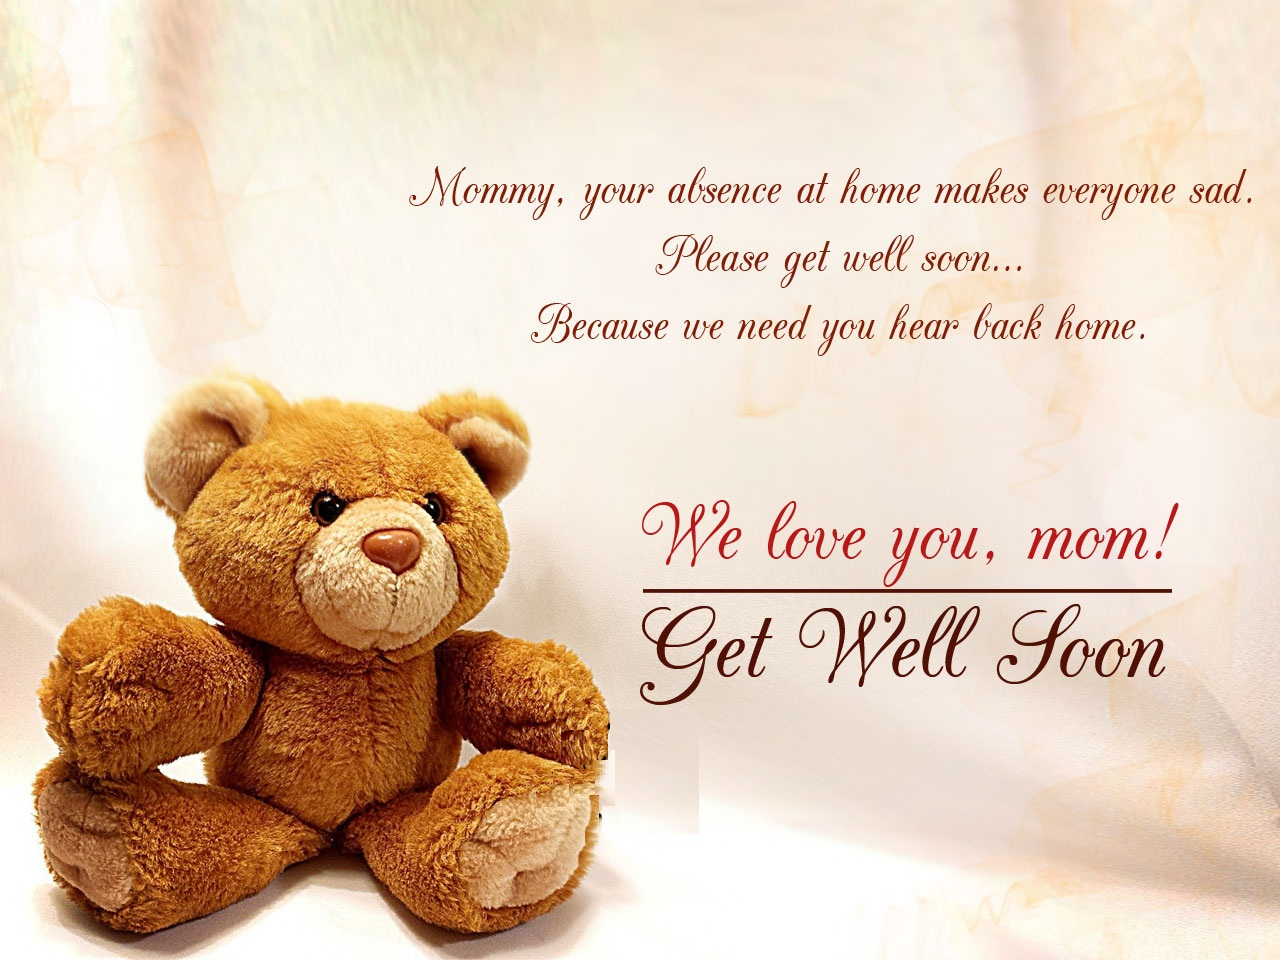 get well soon mother get well soon mom